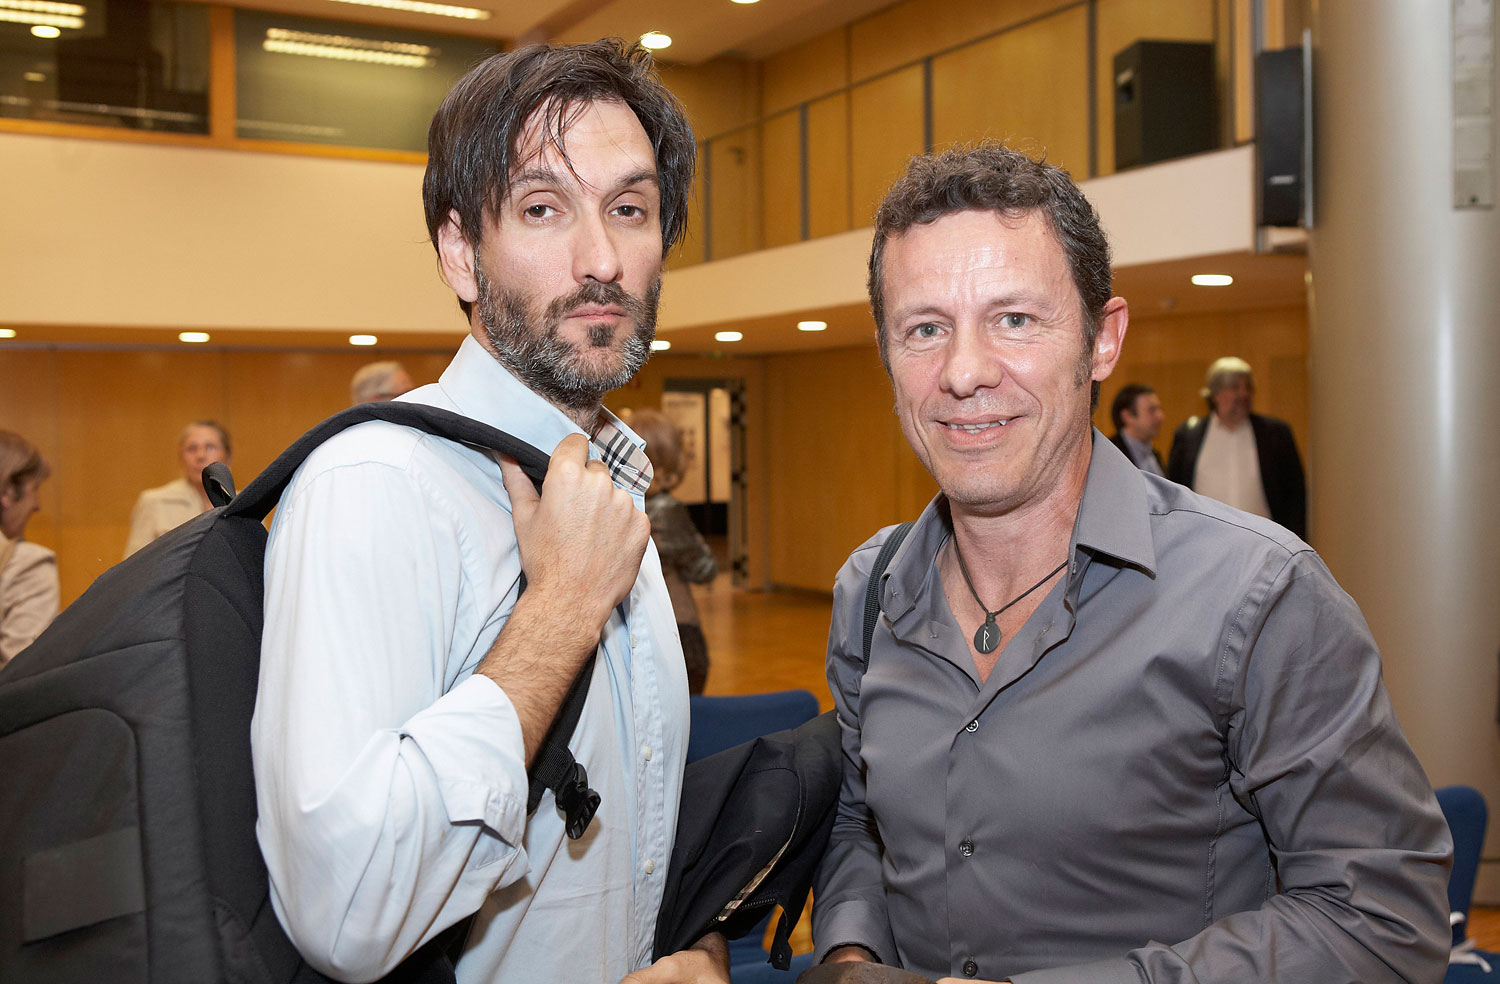 In this file photo taken on May 24, 2012, Spanish reporters Javier Espinosa, right, and Ricardo Garcia Vilanova, left, pose for a photo in Barcelona. The two Spanish journalists were freed after being held captive for six months in Syria by a rogue al-Qaida group.